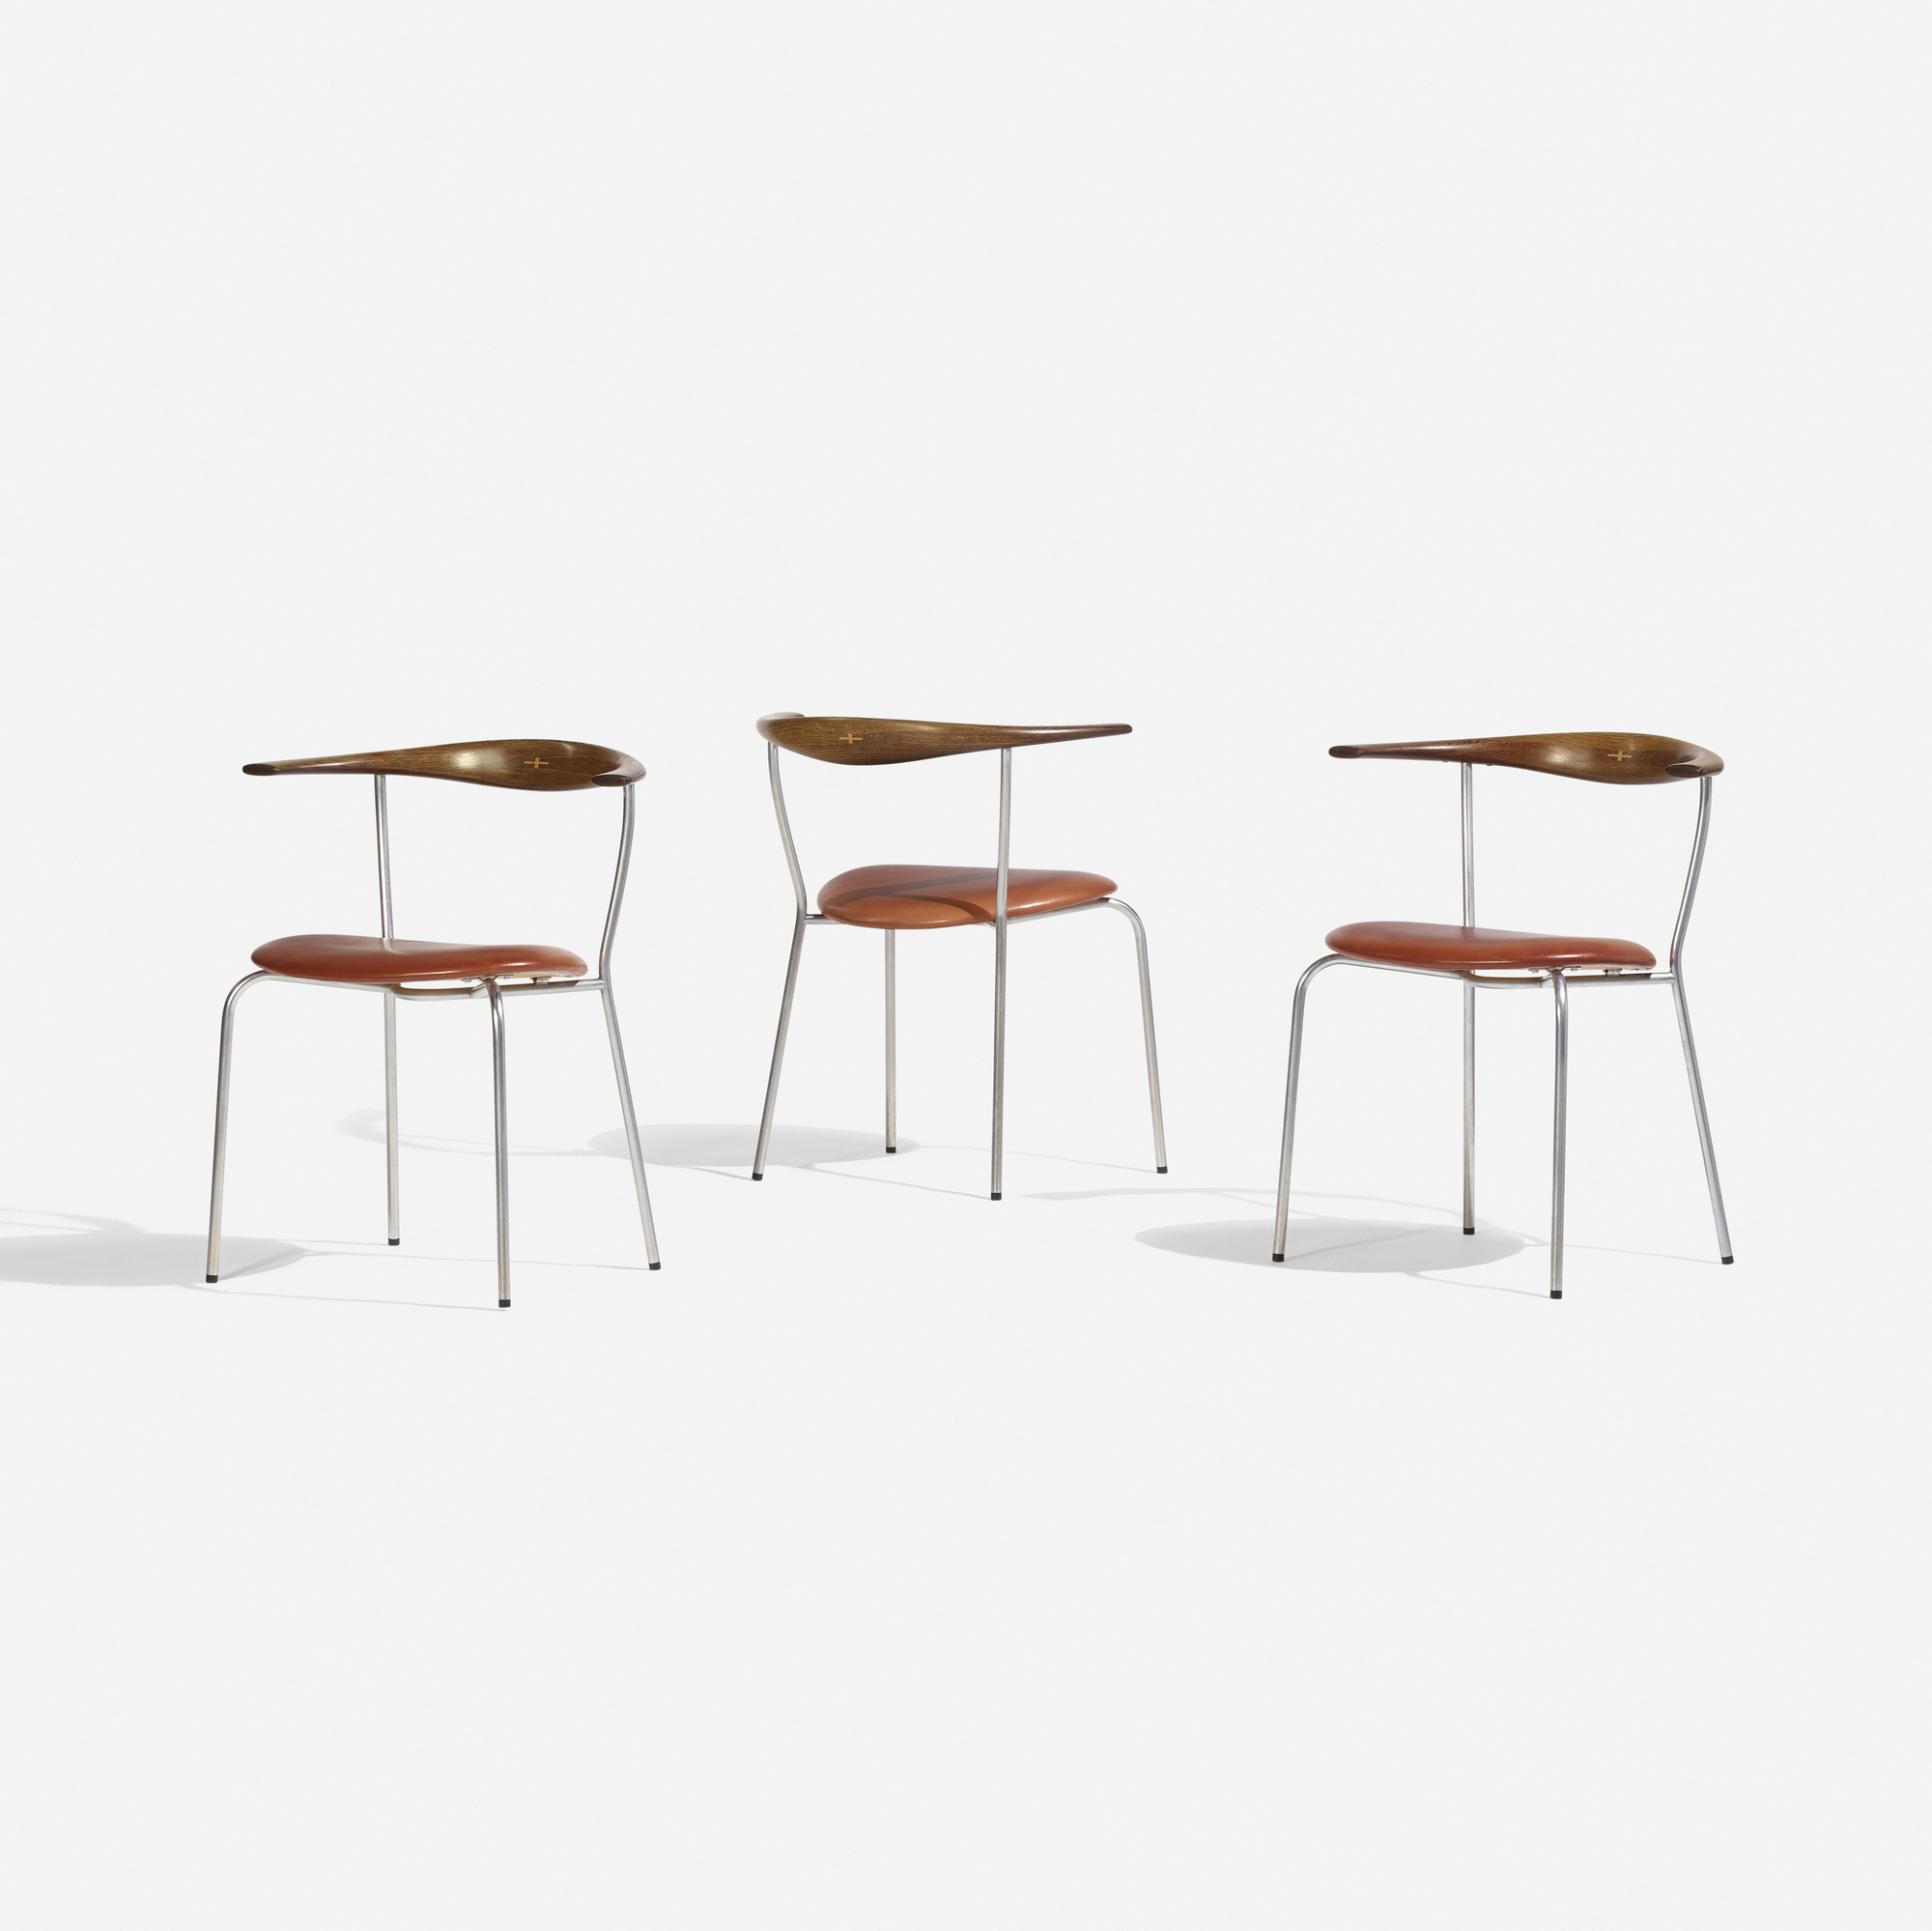 149: Hans J. Wegner / dining chairs model JH701, set of six (2 of 4)